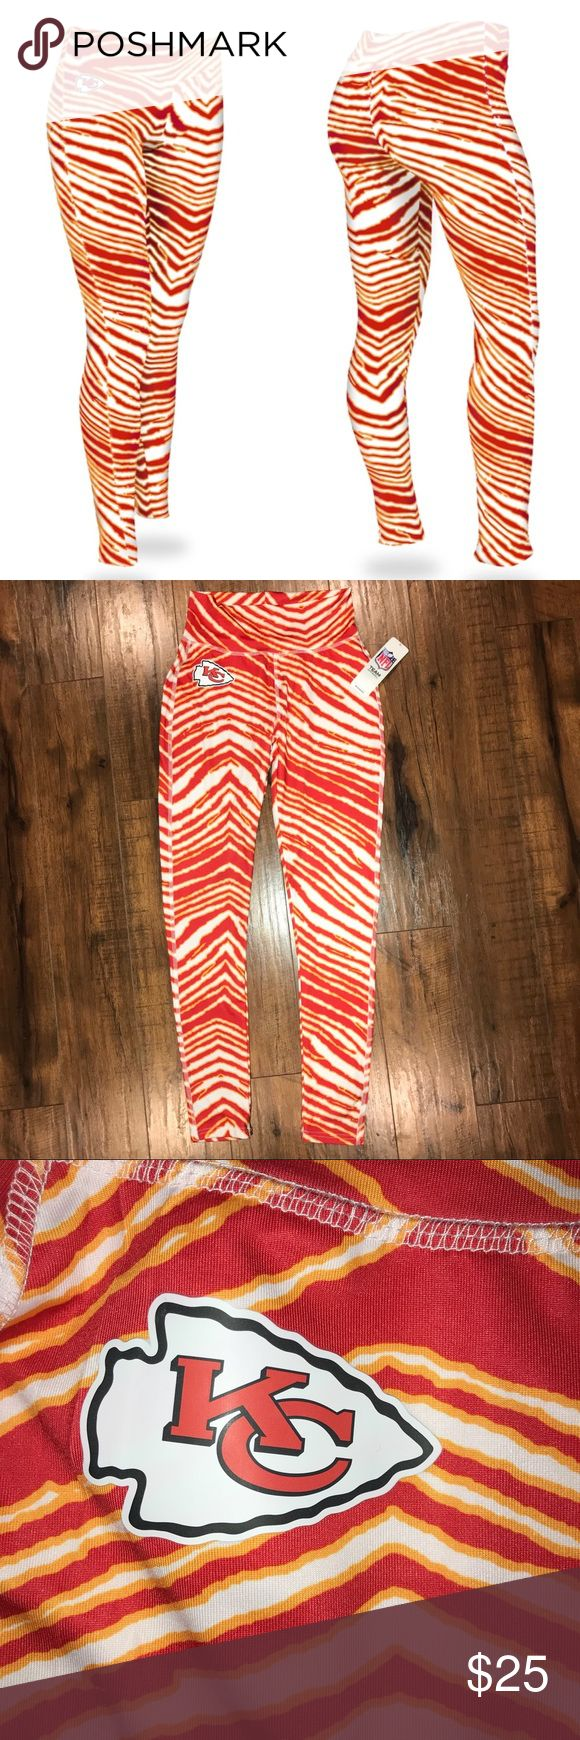 NFL Apparel Kansas City KC Chiefs Zubaz Leggings A few small holes on top of waist and from sensor. Let me know if you have any questions! NFL Team Apparel Pants Leggings